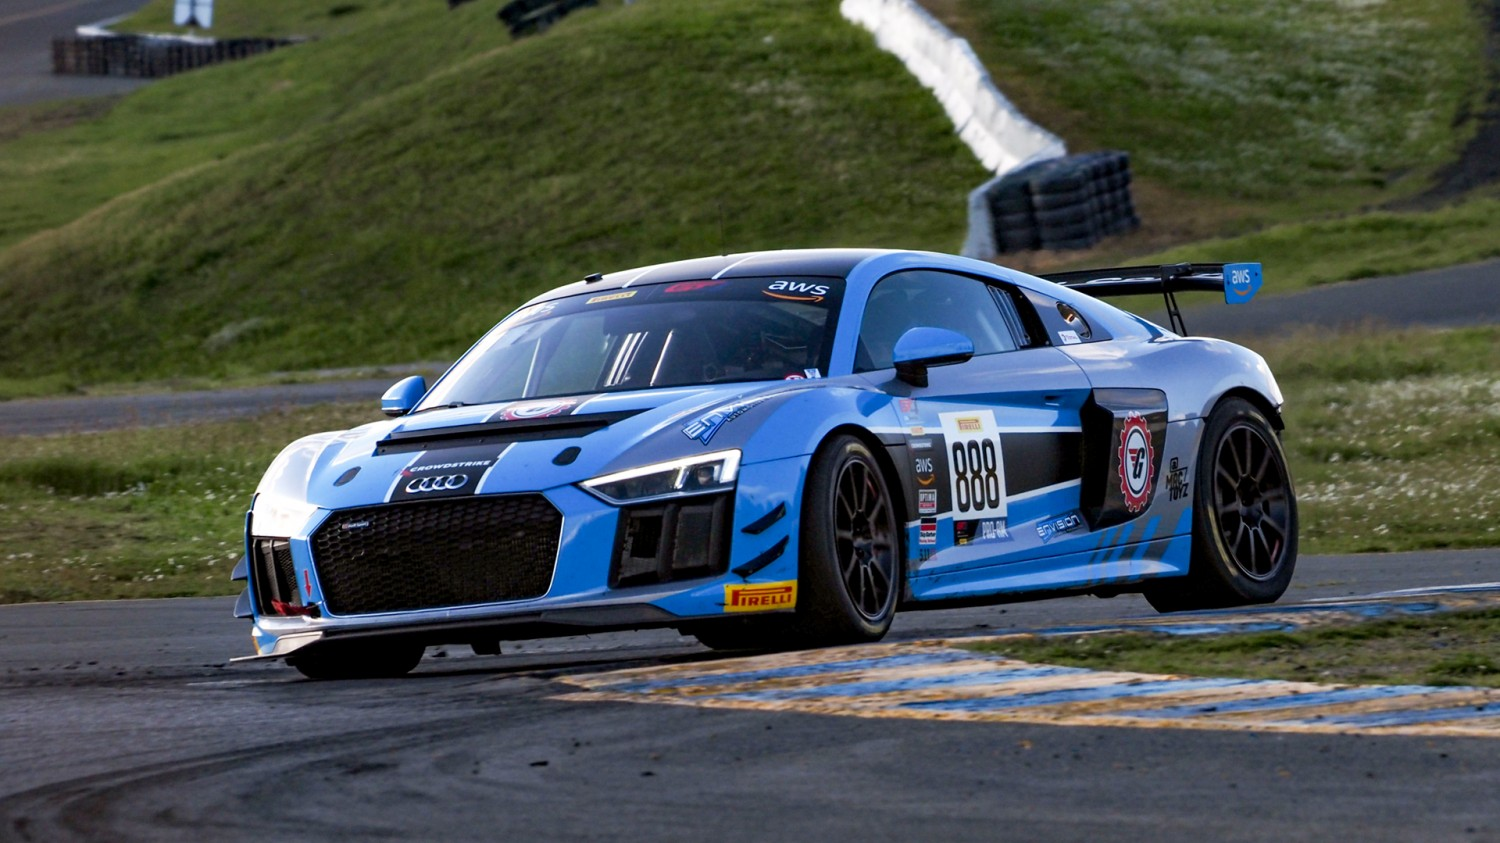 Rearden Racing Scores Podium Finishes with New Lamborghini Cars; Burton, Novikov Take Seconds, Thirds in GT America Sprint at Sonoma